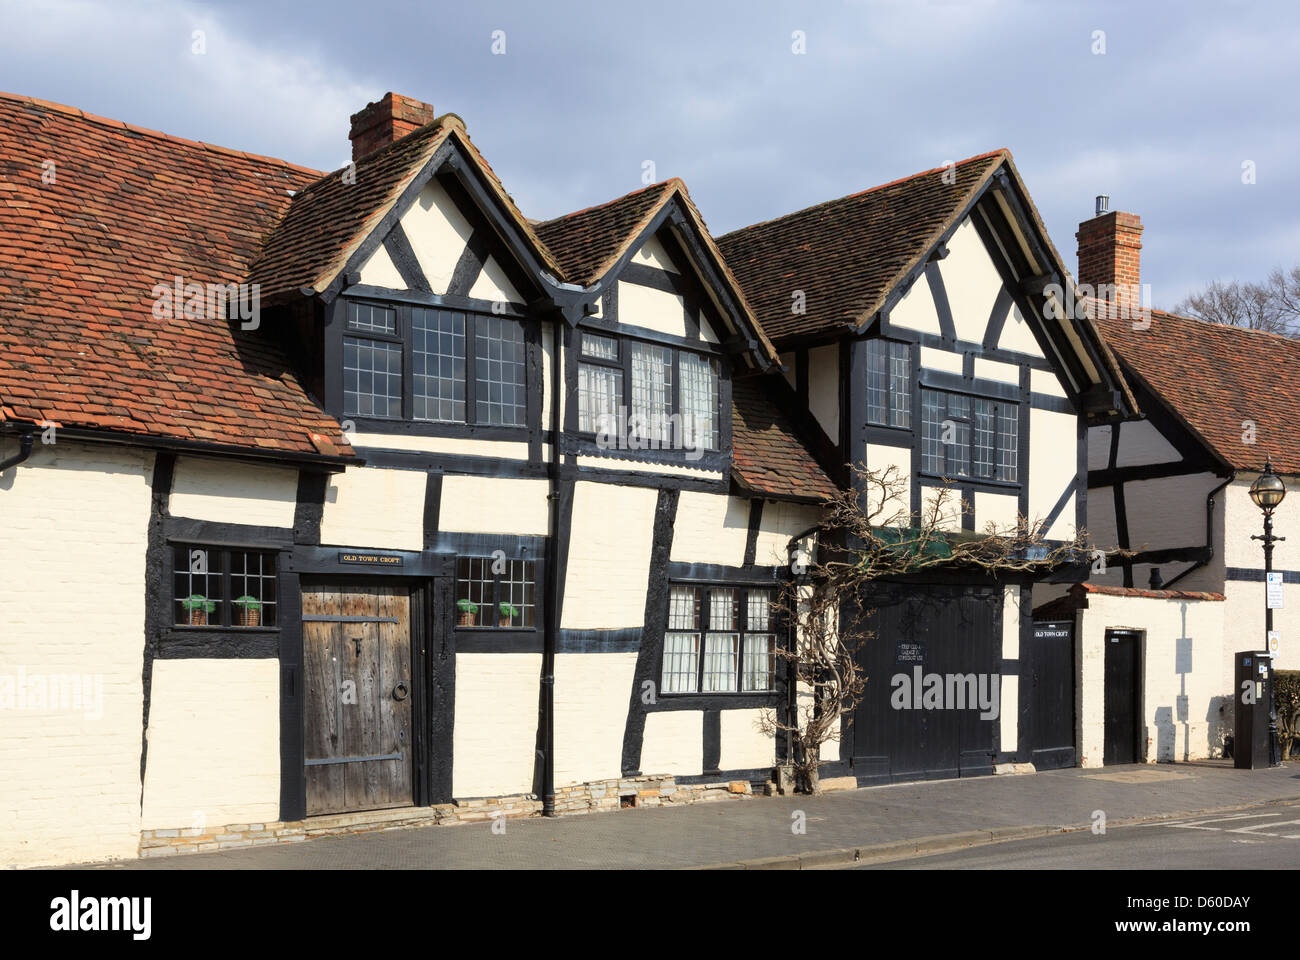 16th century Old Town Croft timbered house grade II listed building in Stratford-upon-Avon, Warwickshire, England, - Stock Image